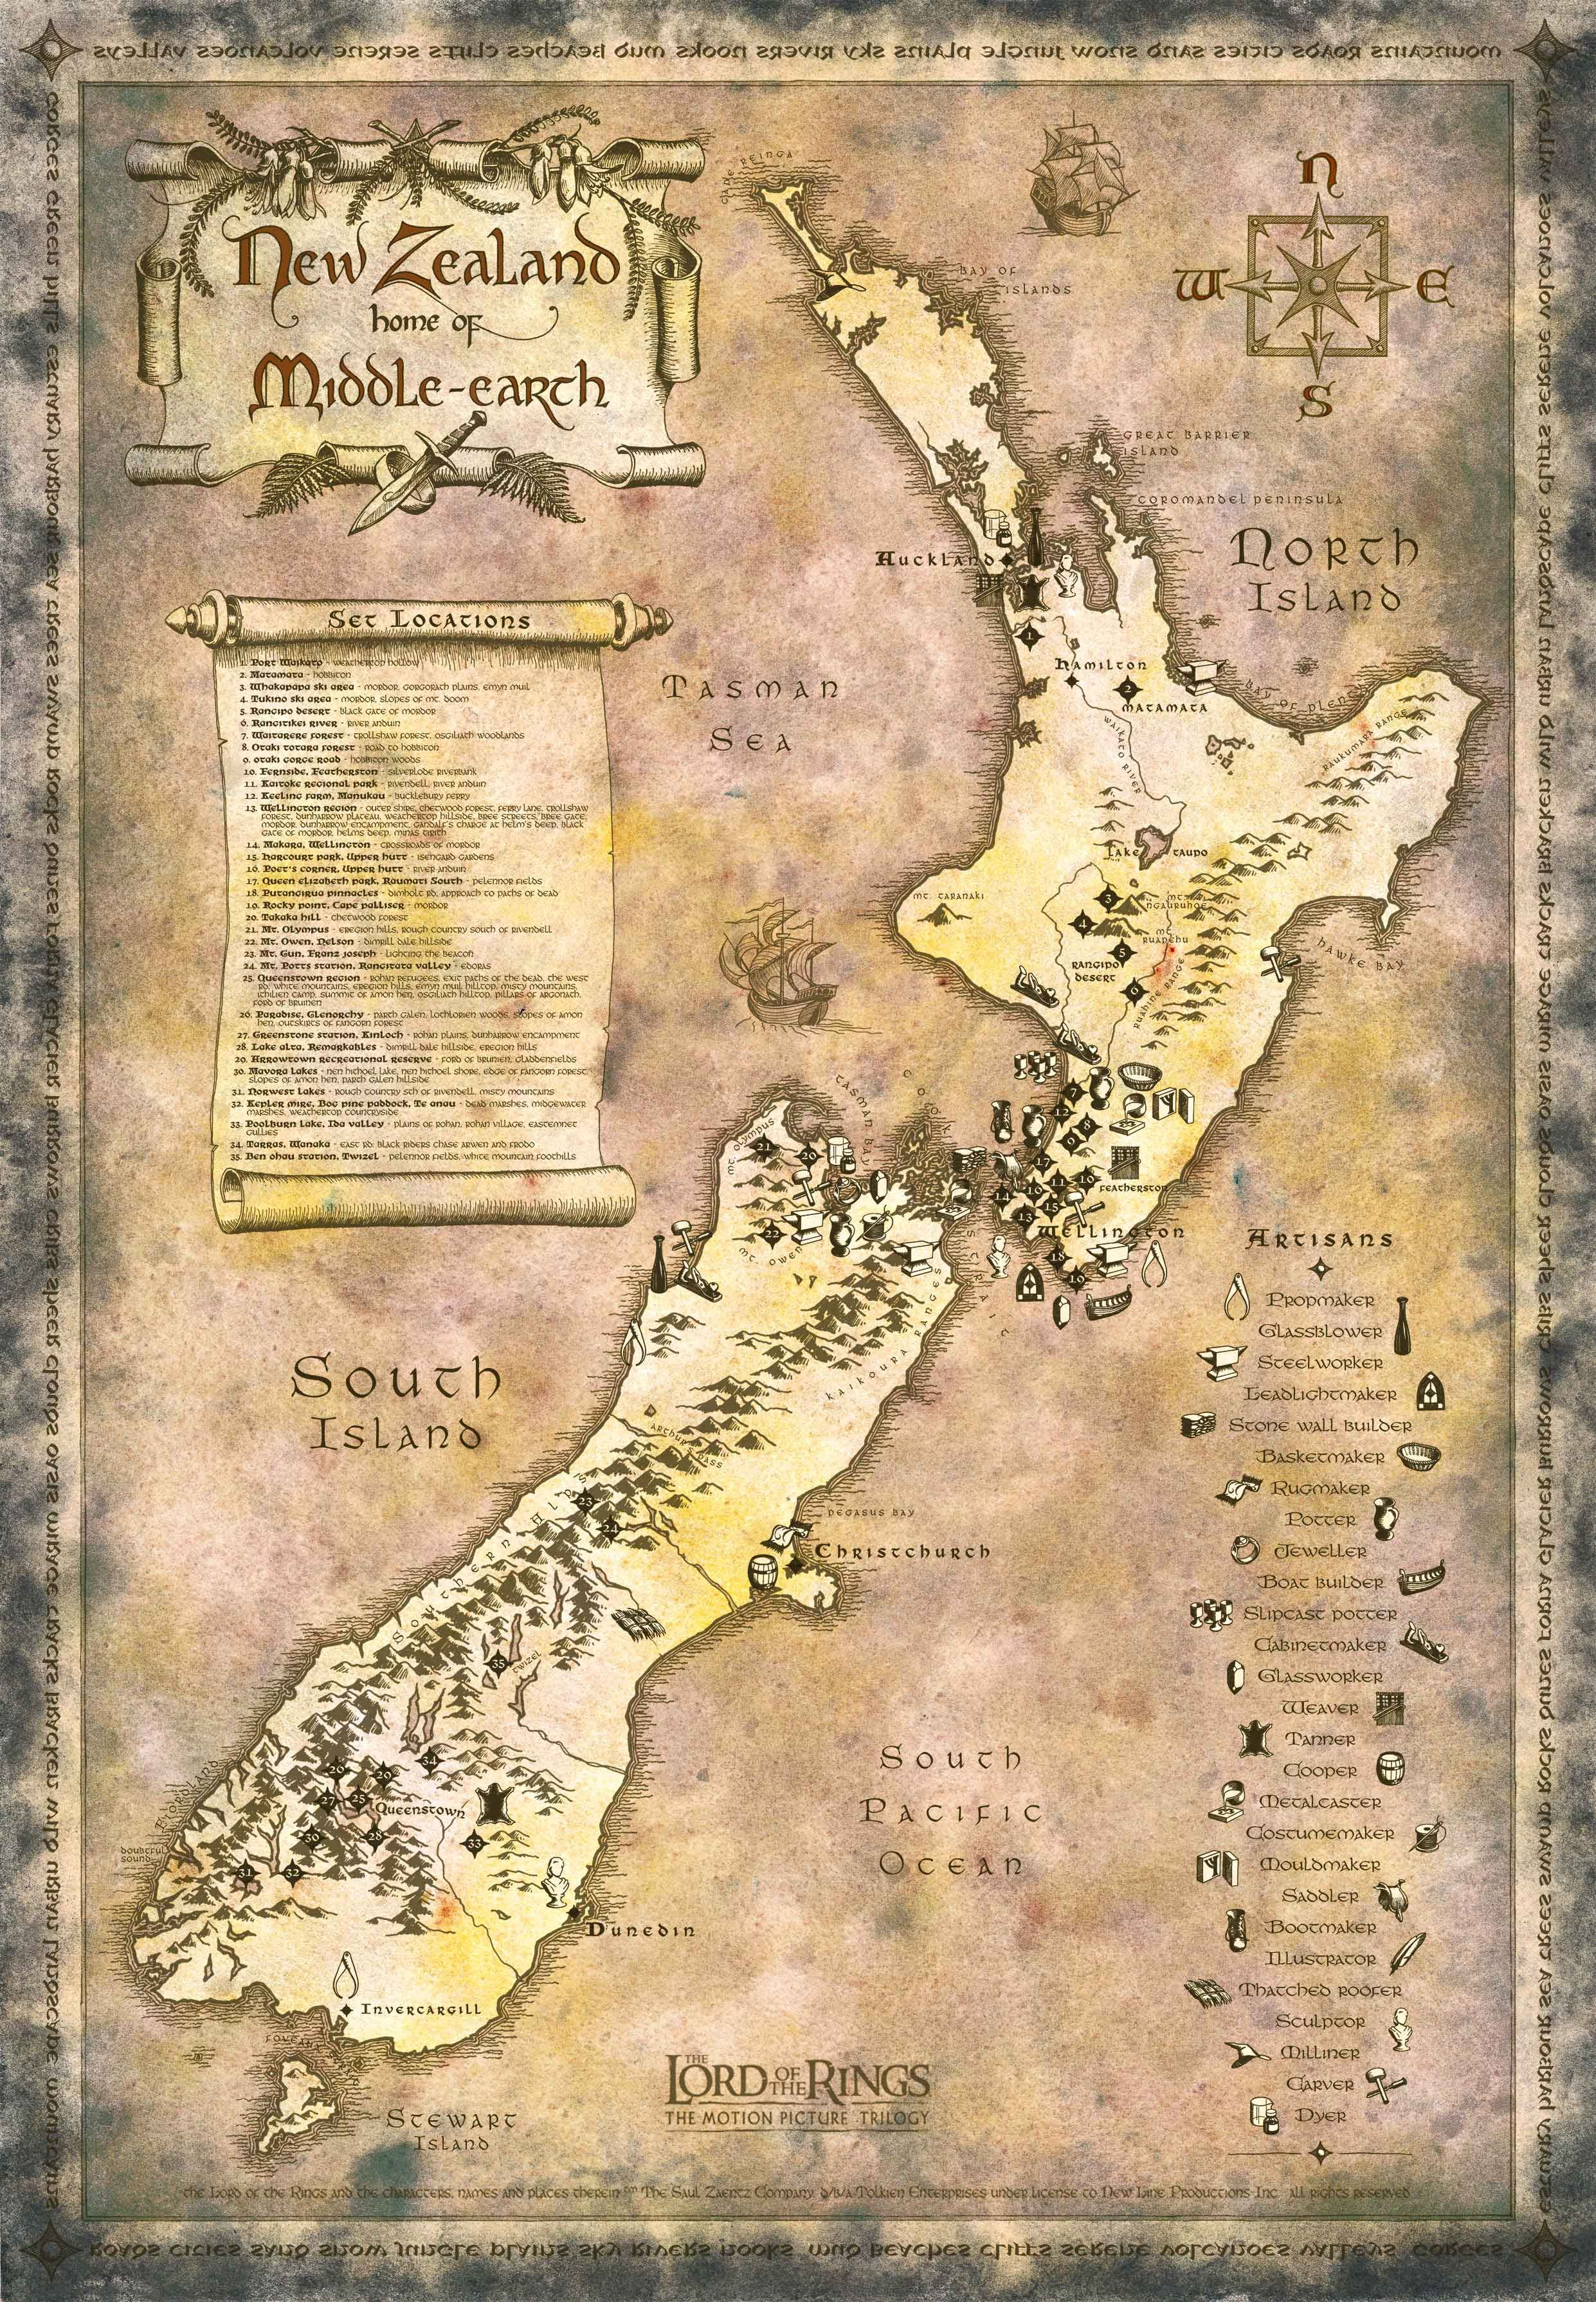 New Zealand Map LOTR style contains detailed set locations for